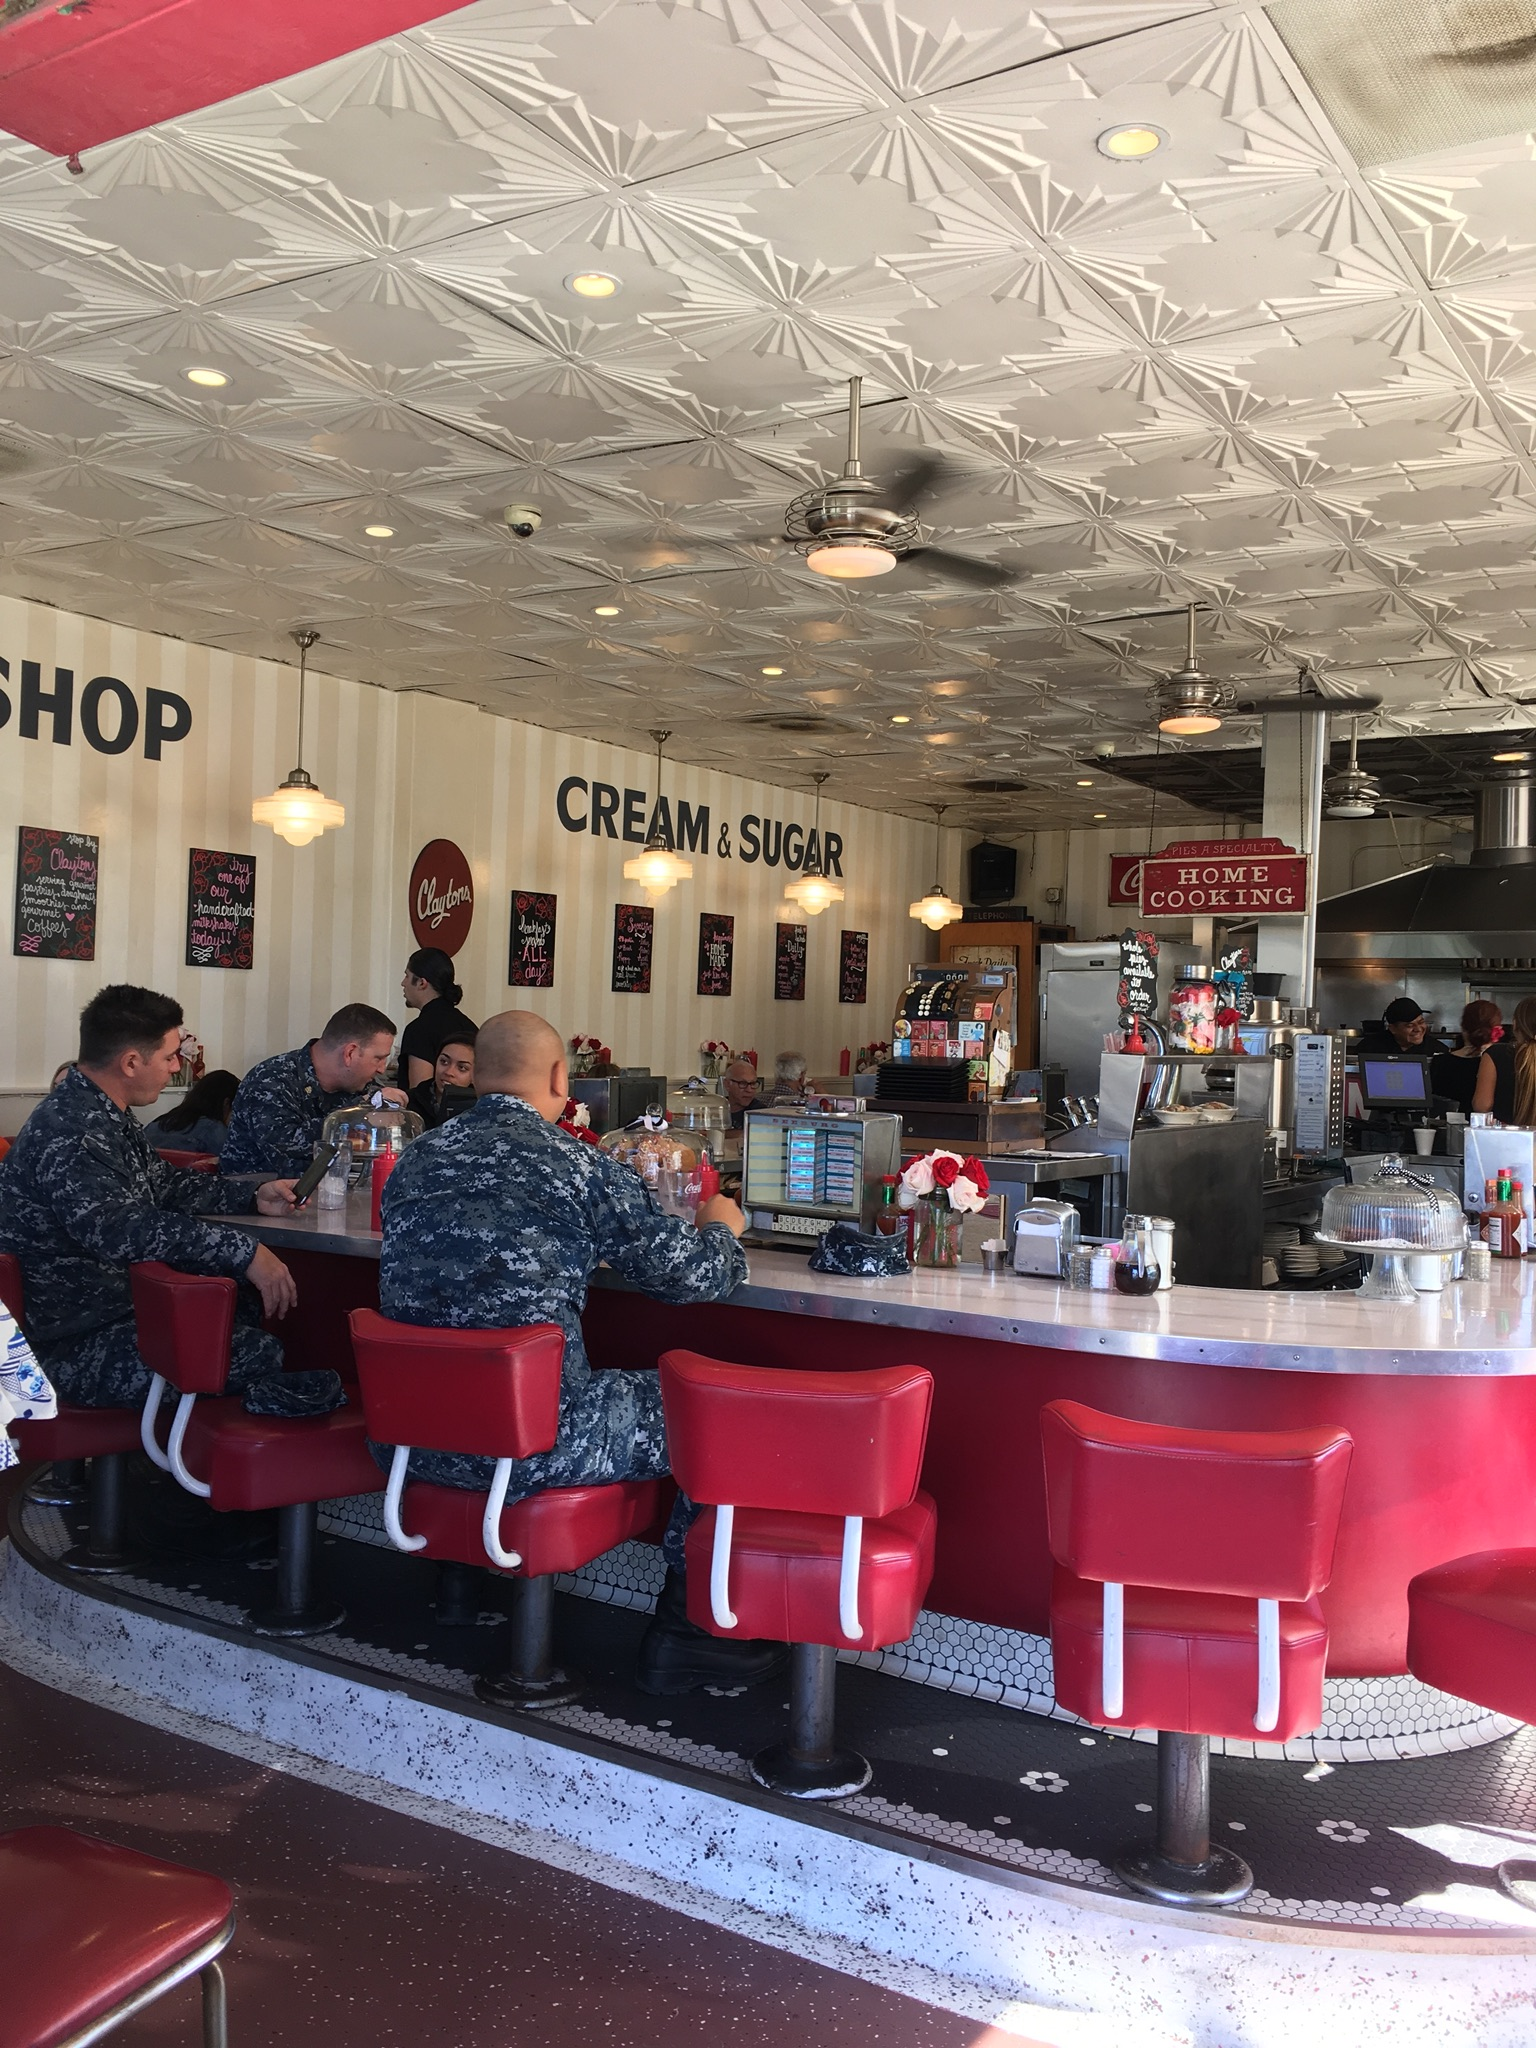 The counter at Clayton's diner.